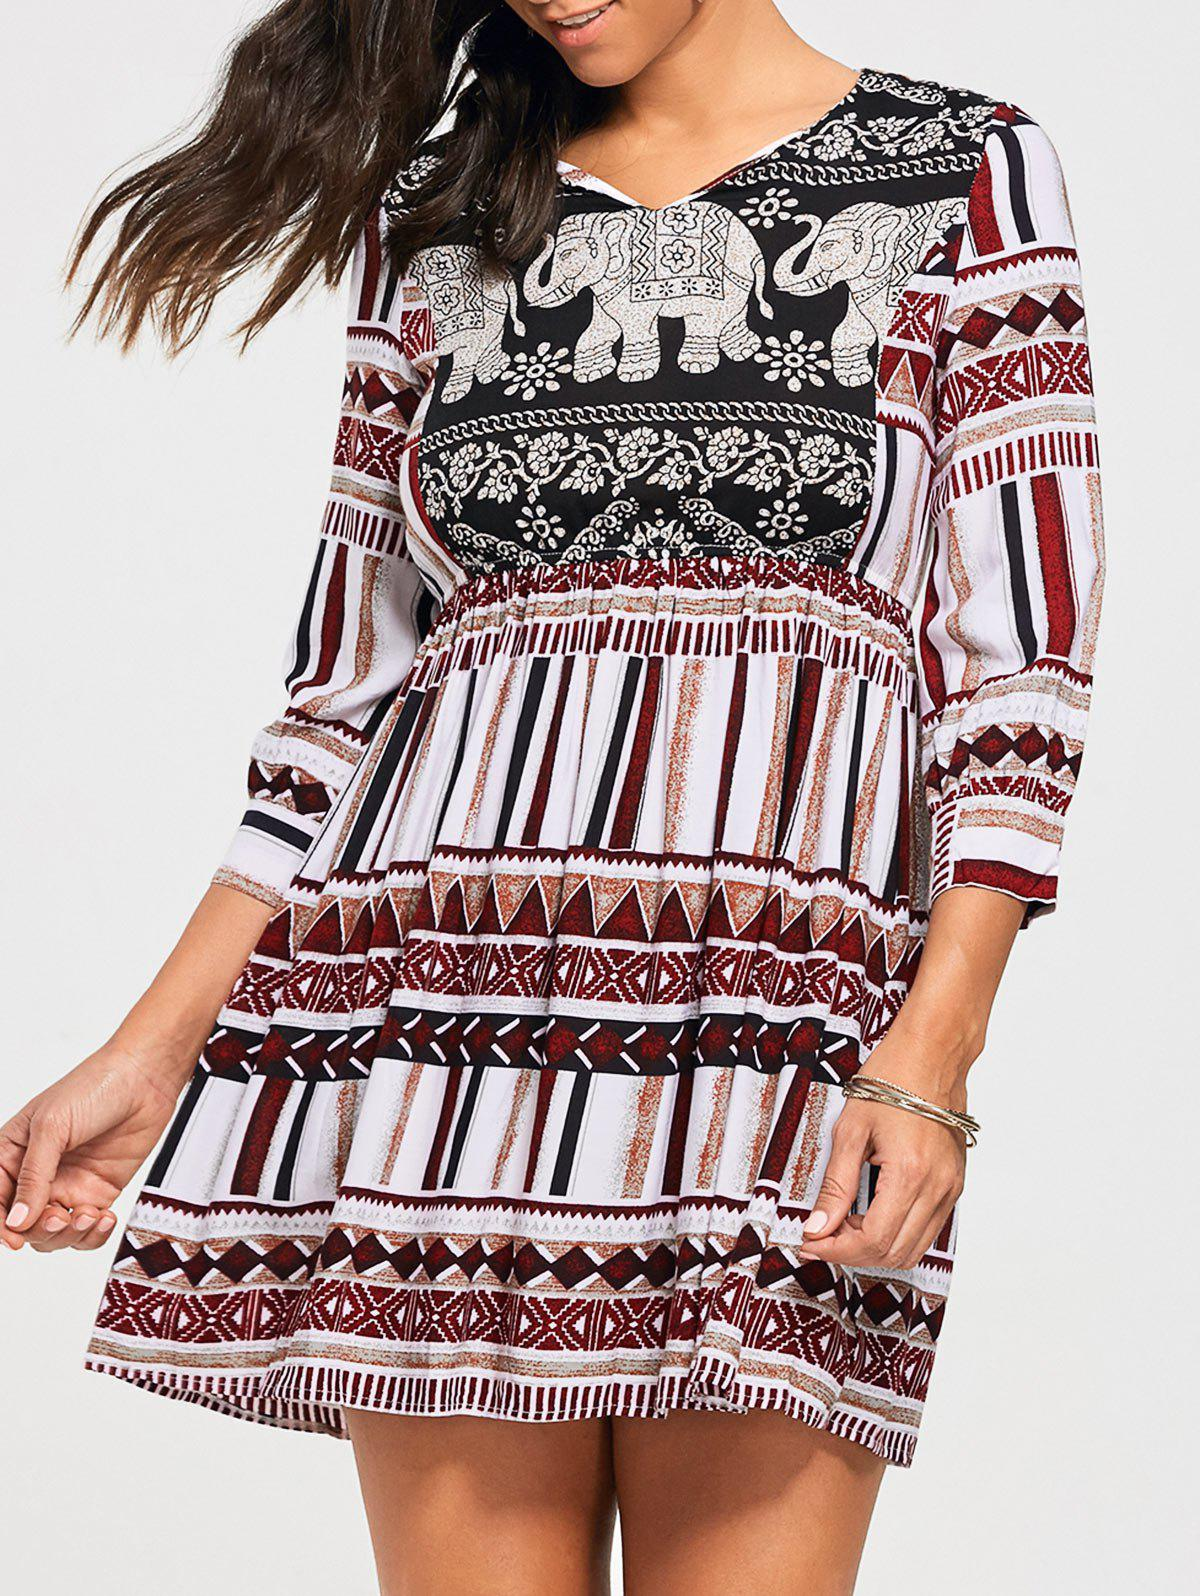 Bohemia Elephant Print Empire Waisted Tunic Dress - multicolorcolore 2XL